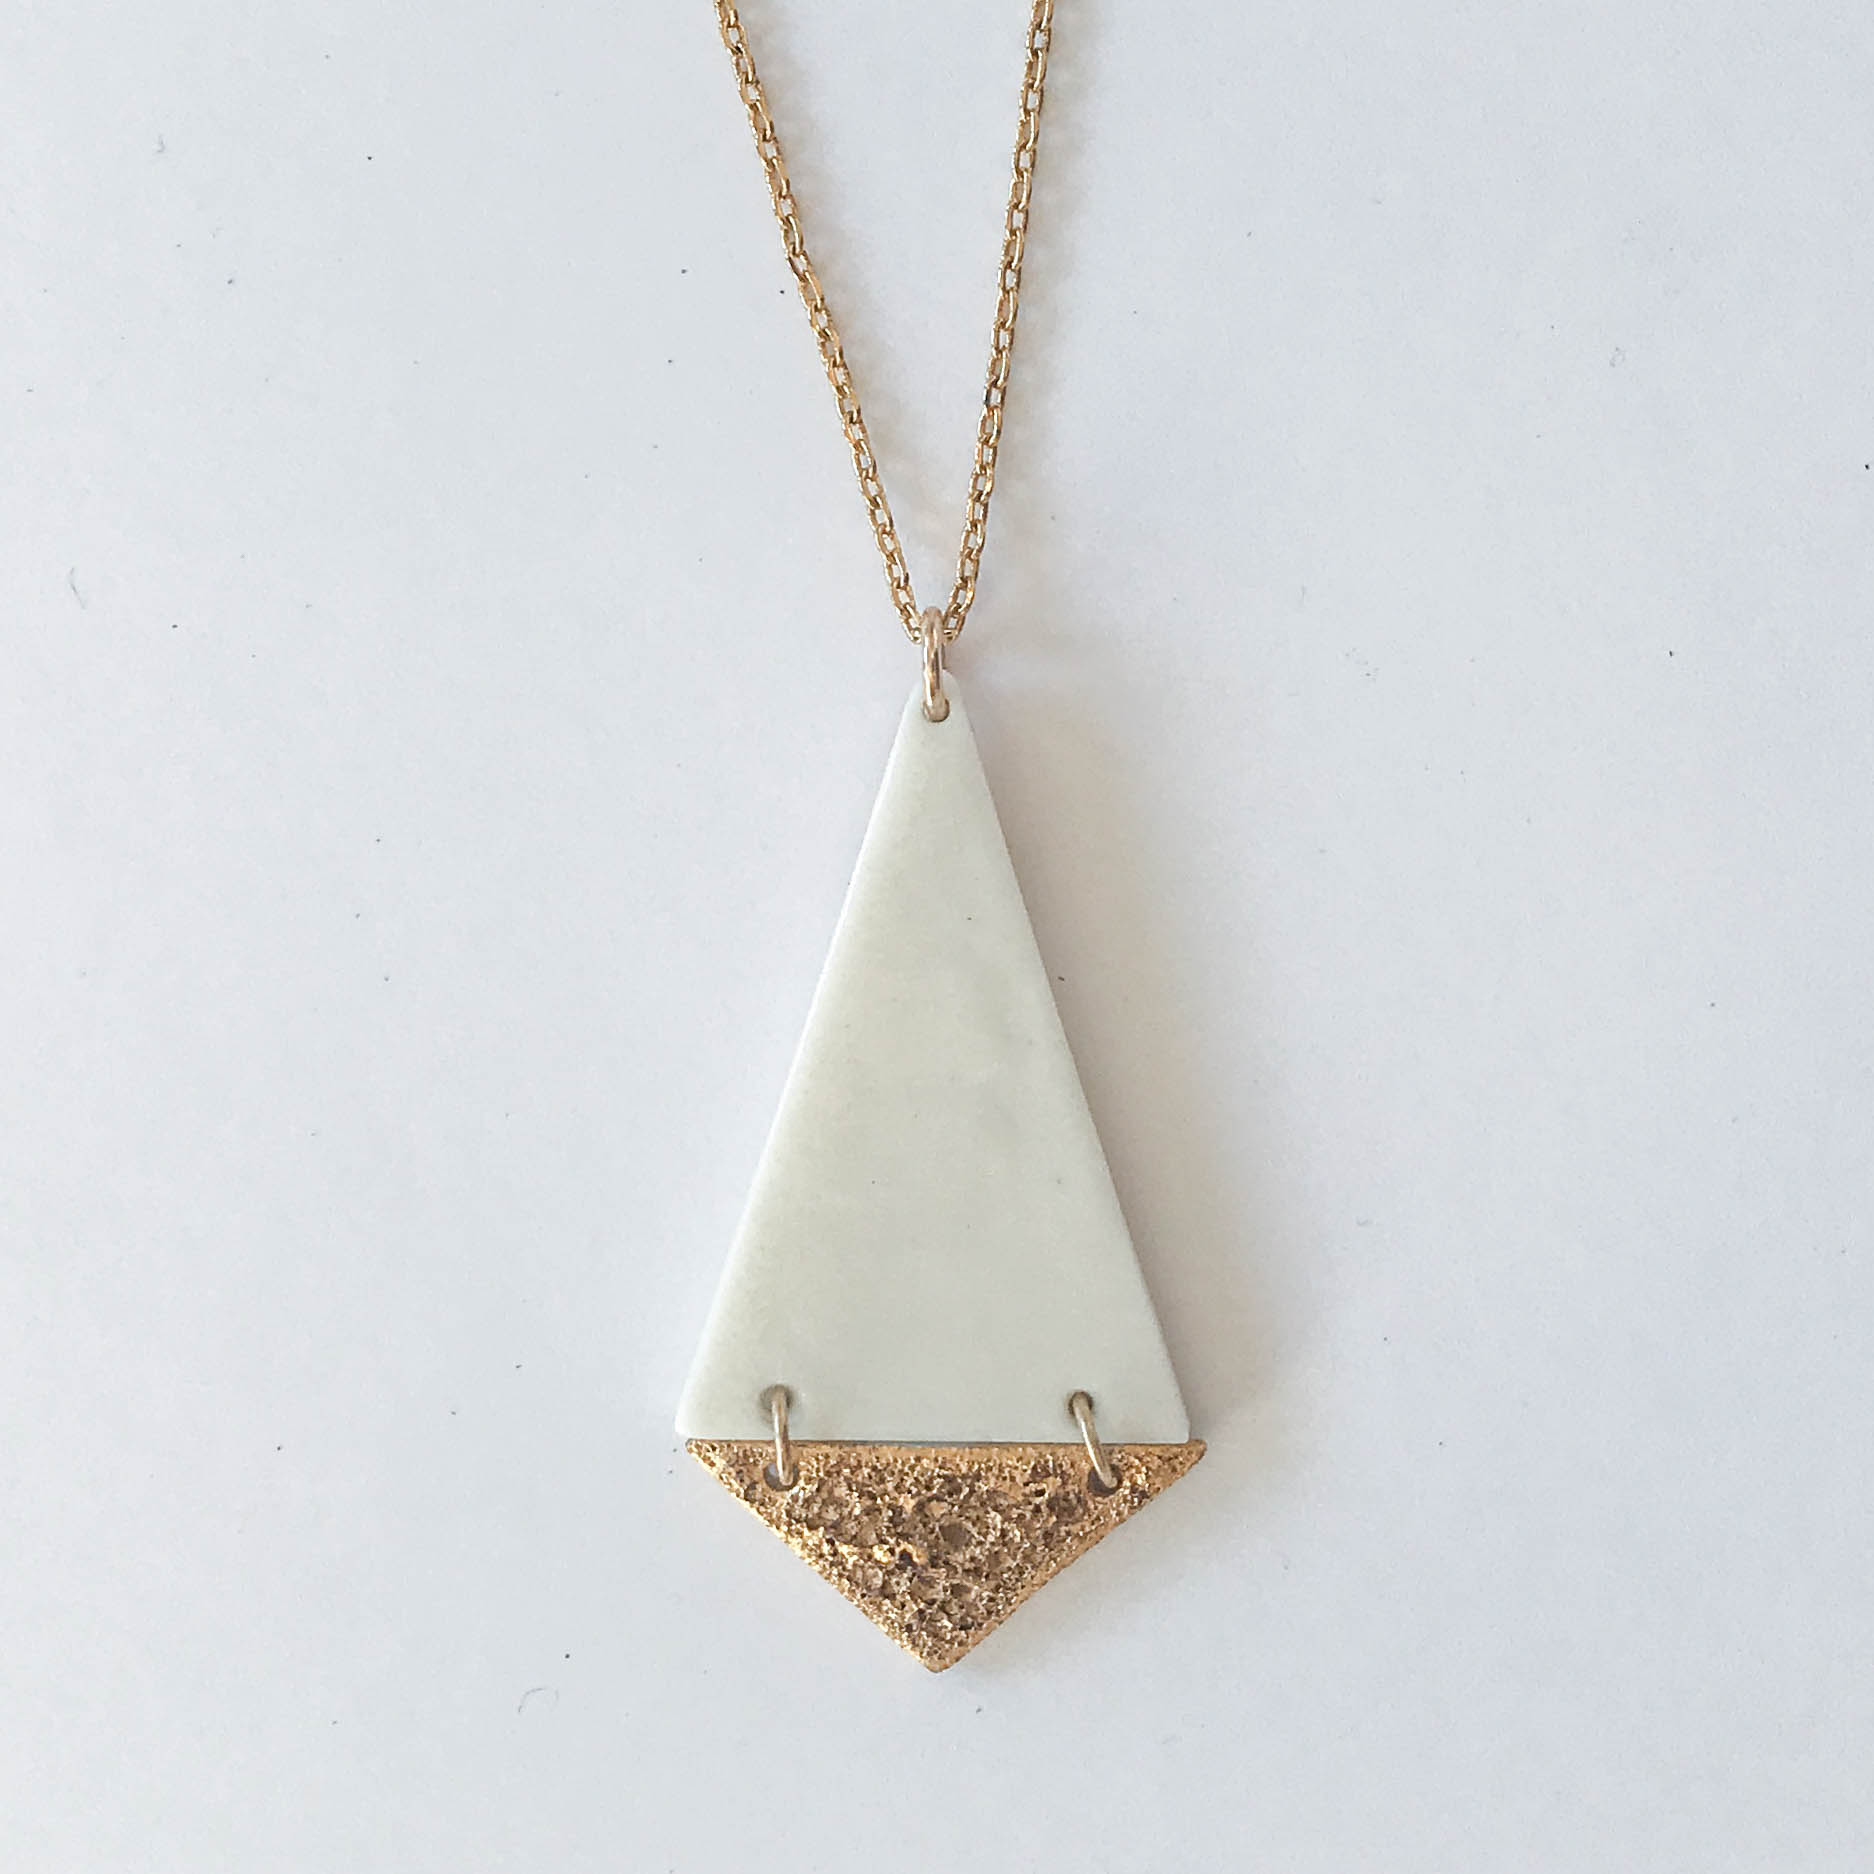 Two-tiered hinged necklace, white porcelain over gold froth, 14K gold filled chain, $110